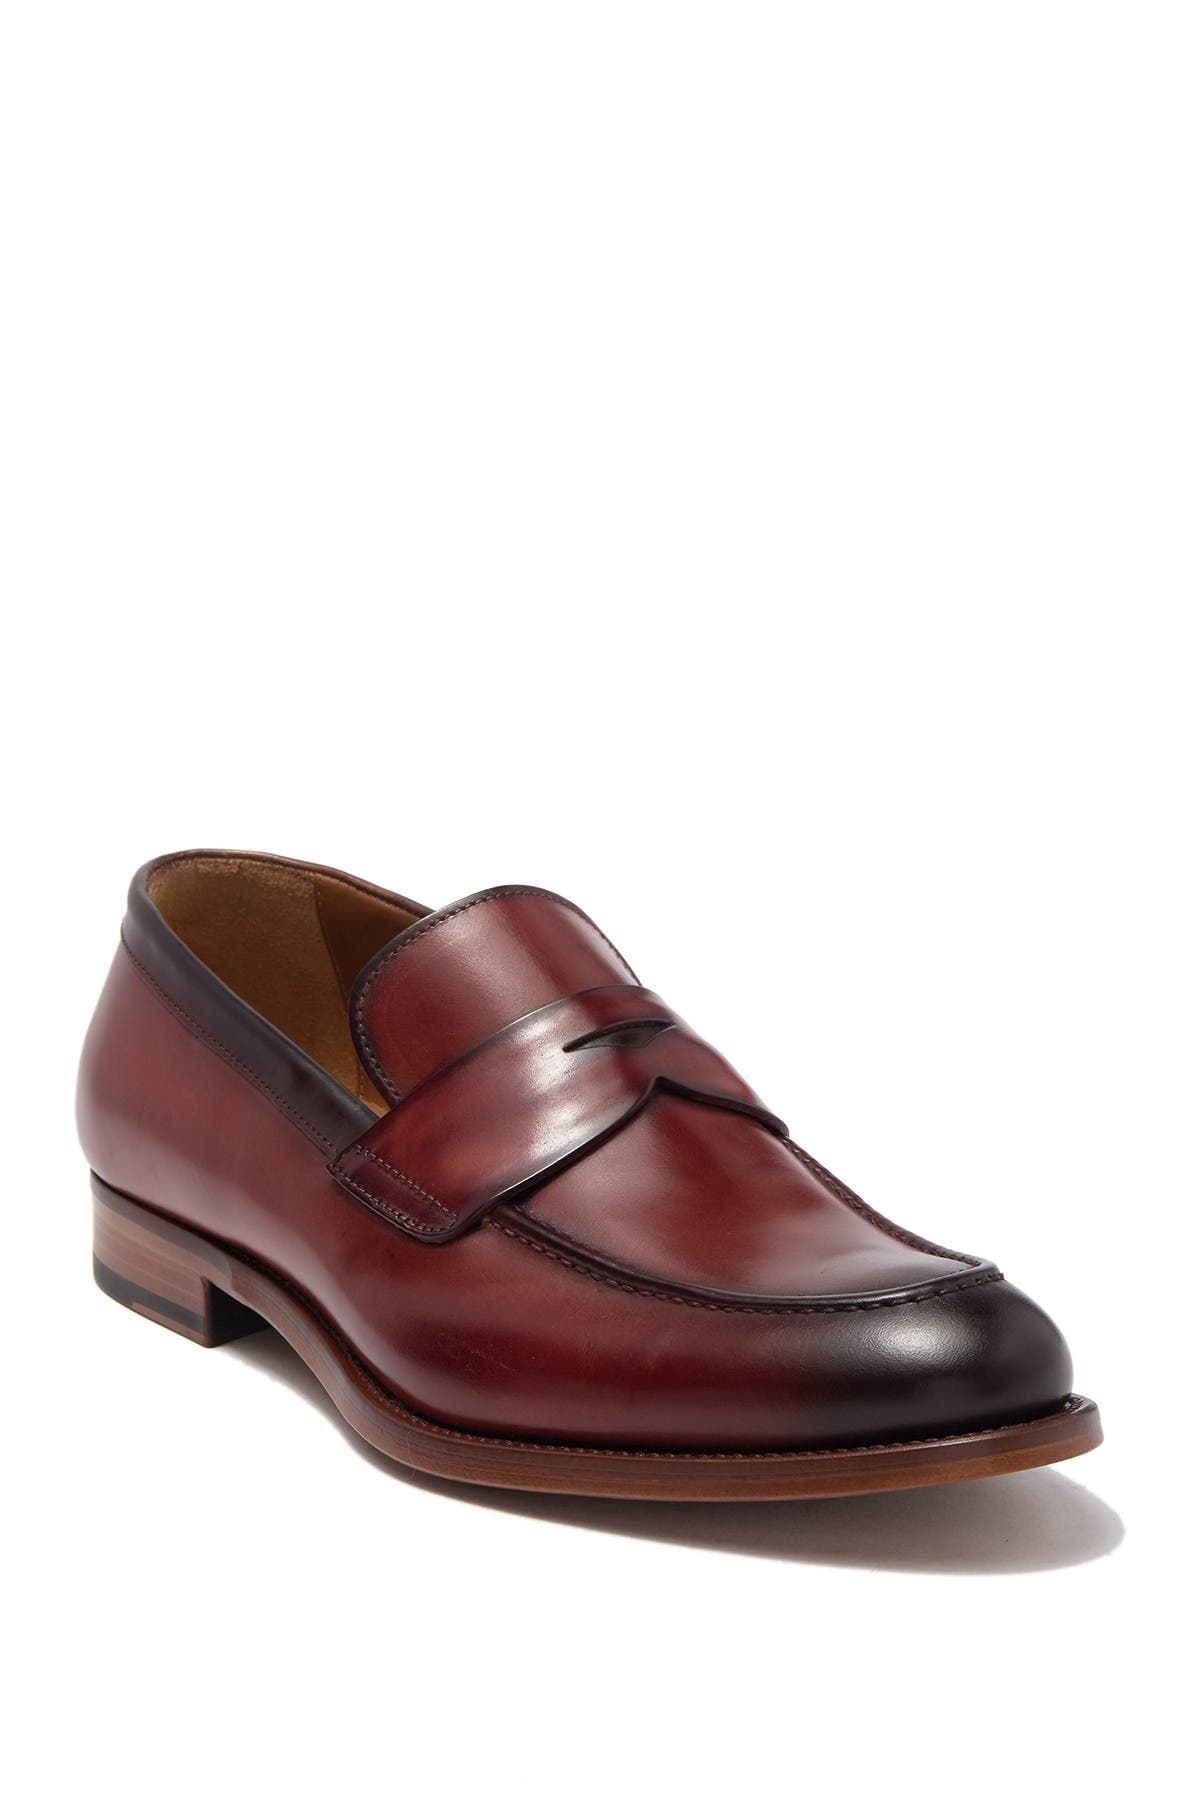 Image of Antonio Maurizi Leather Penny Loafer